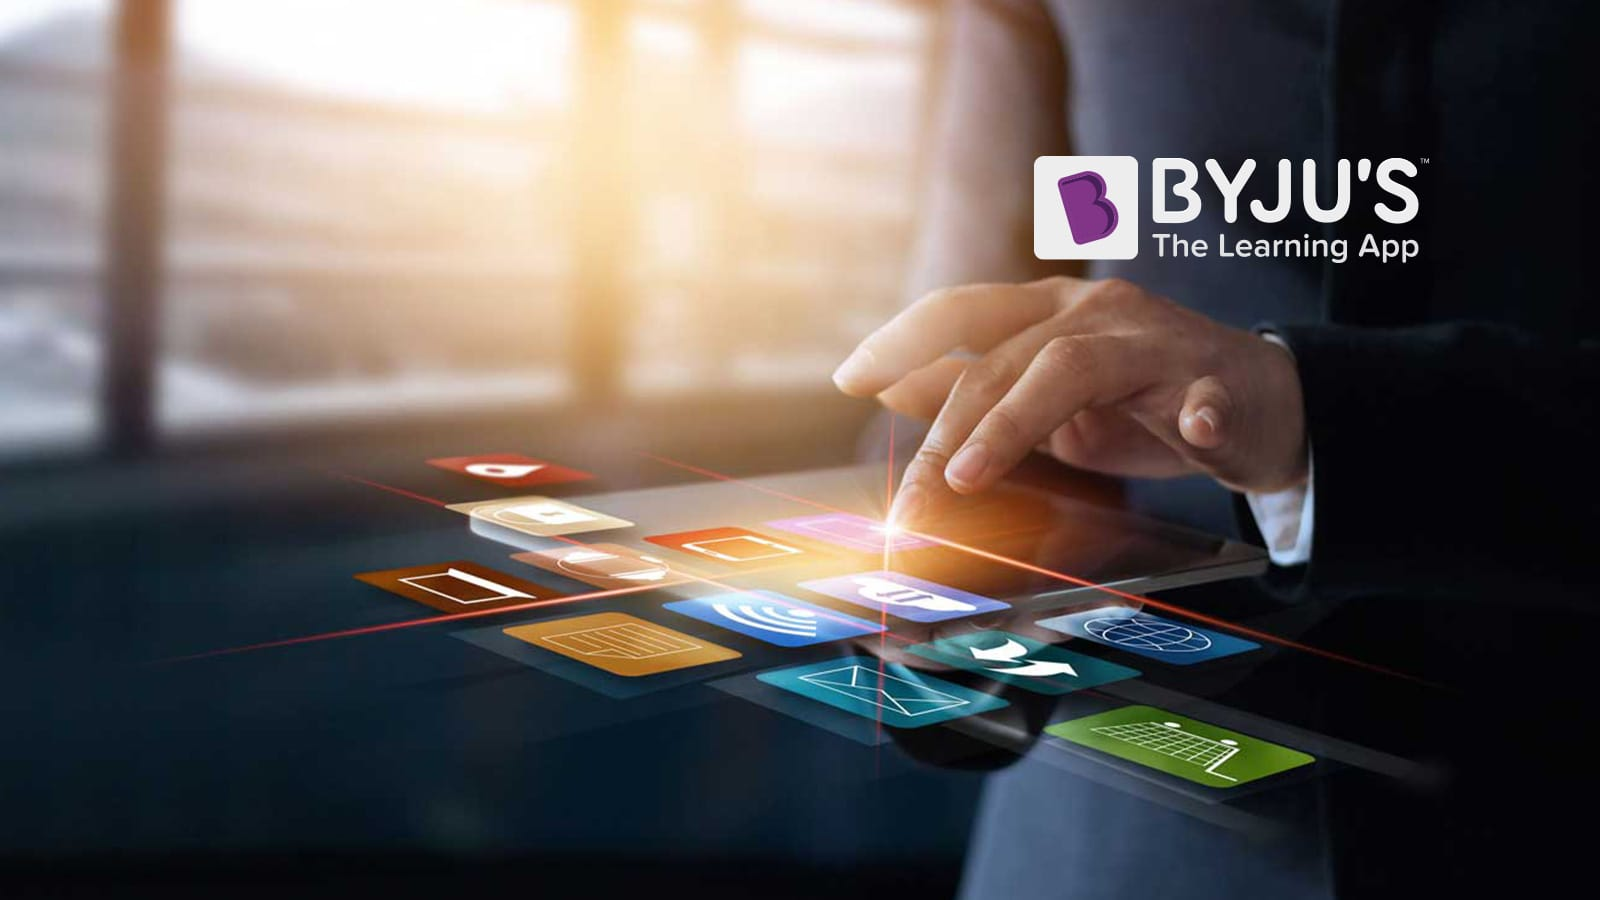 Challenges for Byju's Business Model